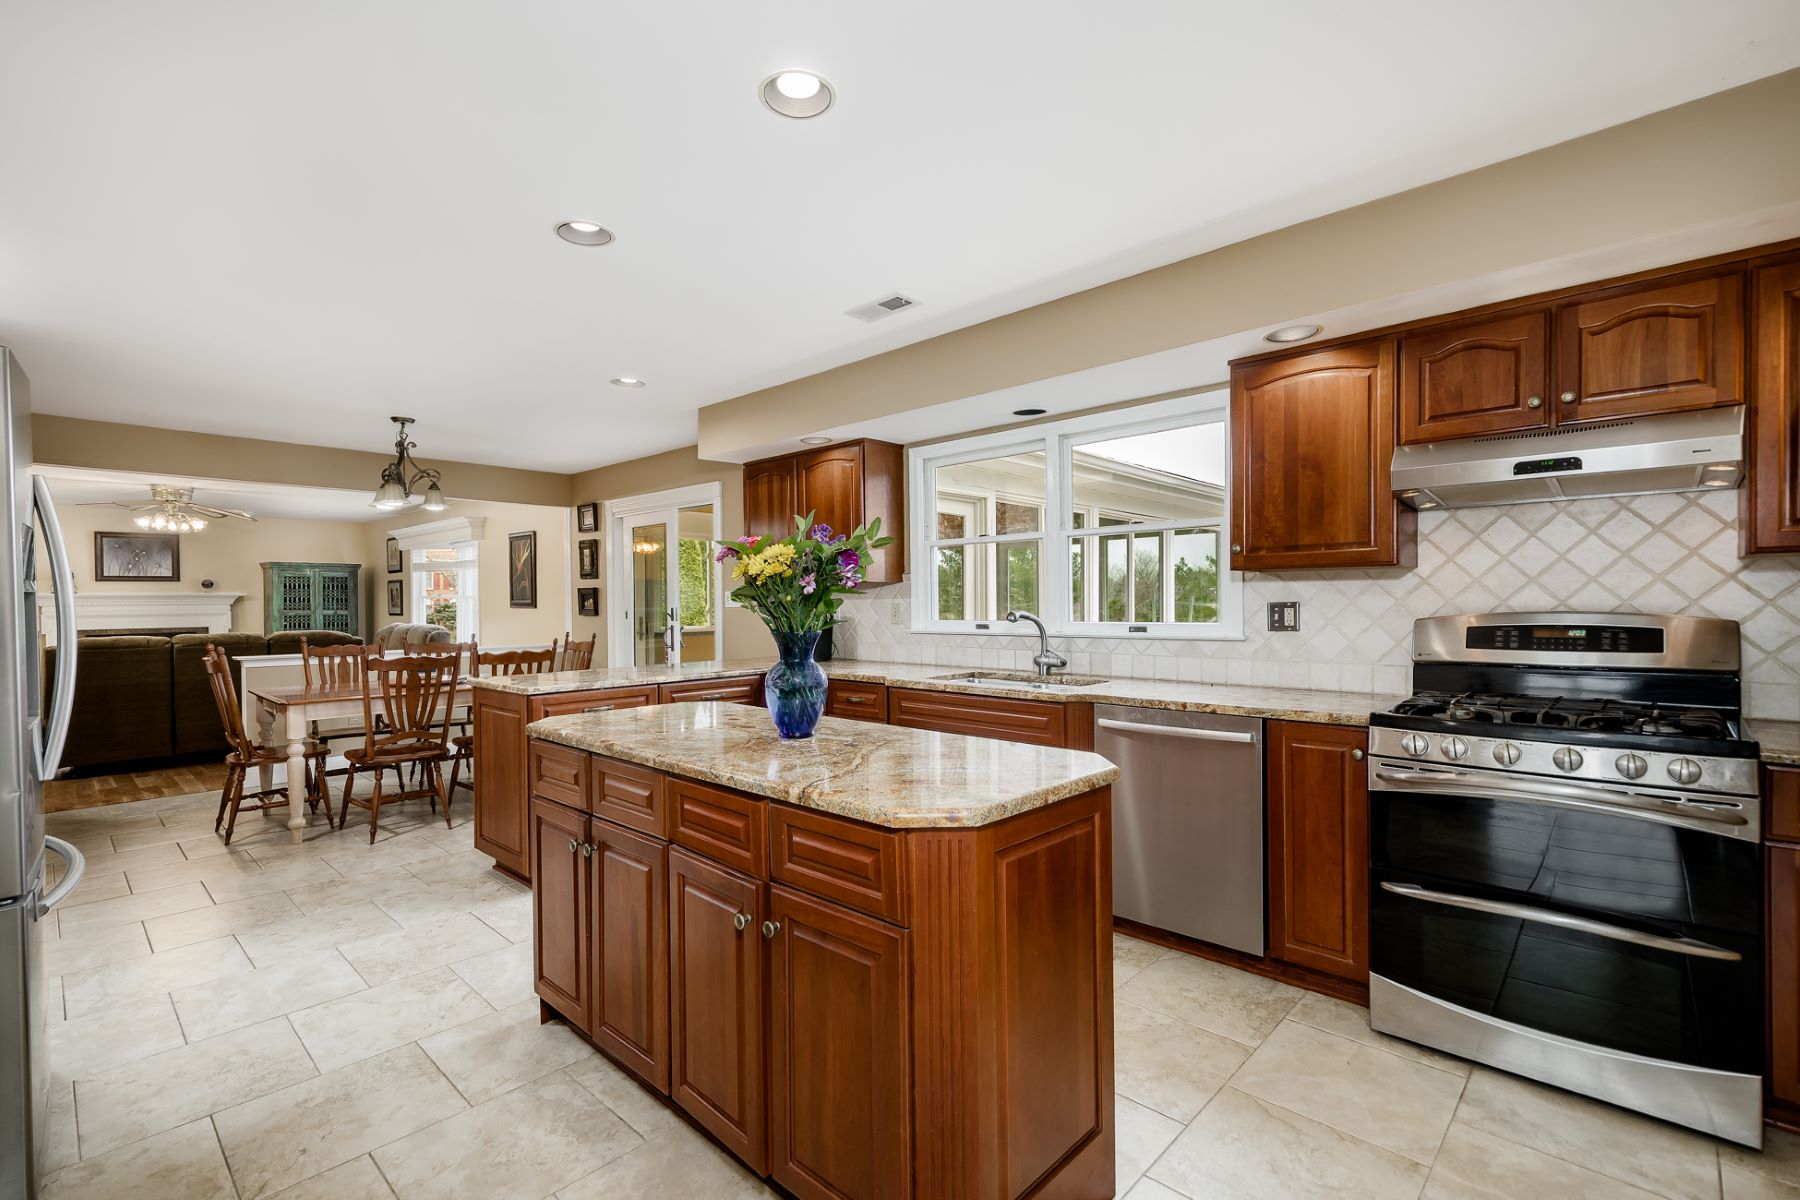 Additional photo for property listing at Handsome Warmth in Windsor Hunt 2 Beardsly Court, West Windsor, New Jersey 08550 United States